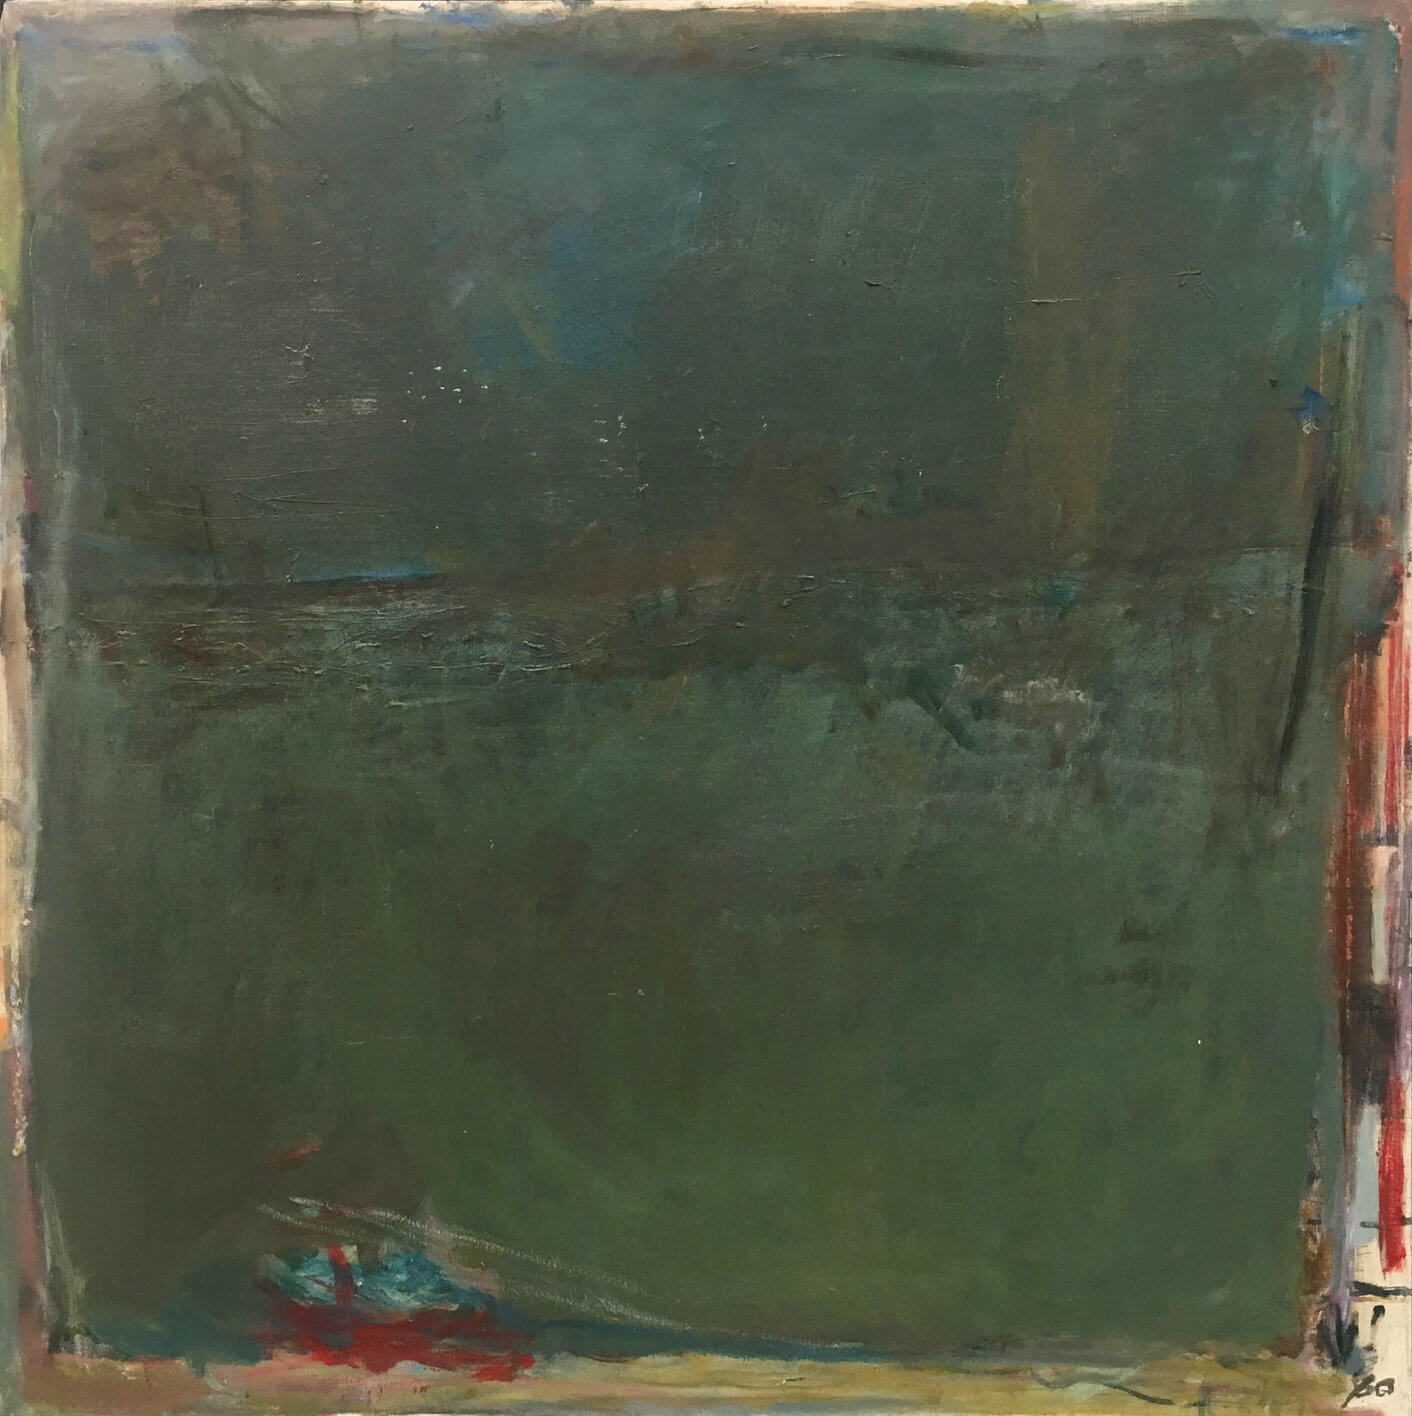 1474_Yehezkel Streichman, 1980, Oil on canvas, 100x100 cm 12,500$-1412x1416